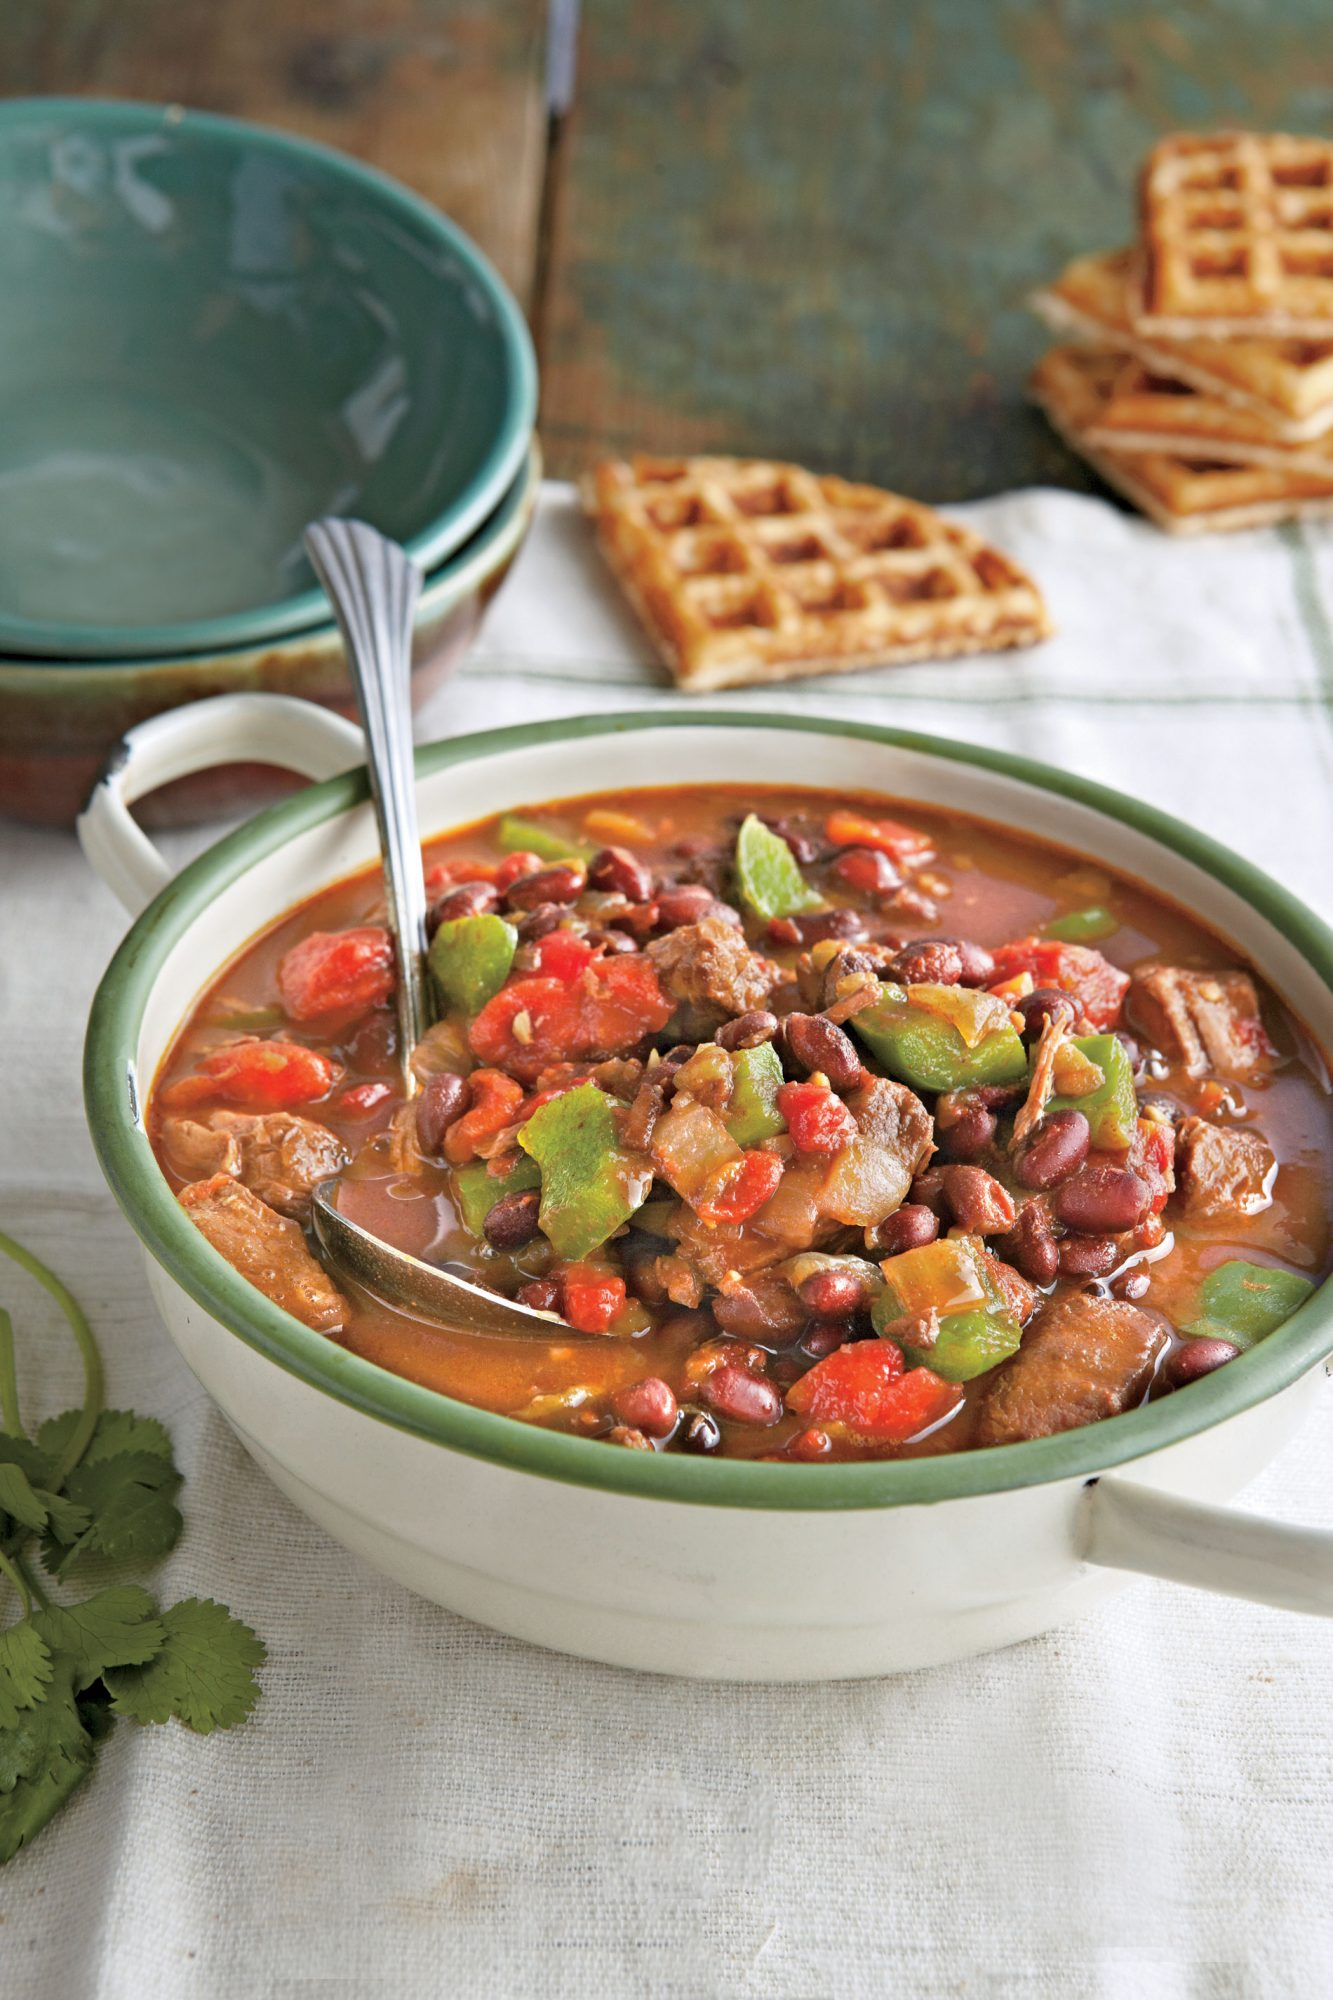 Spicy Steak and Black Bean Chili